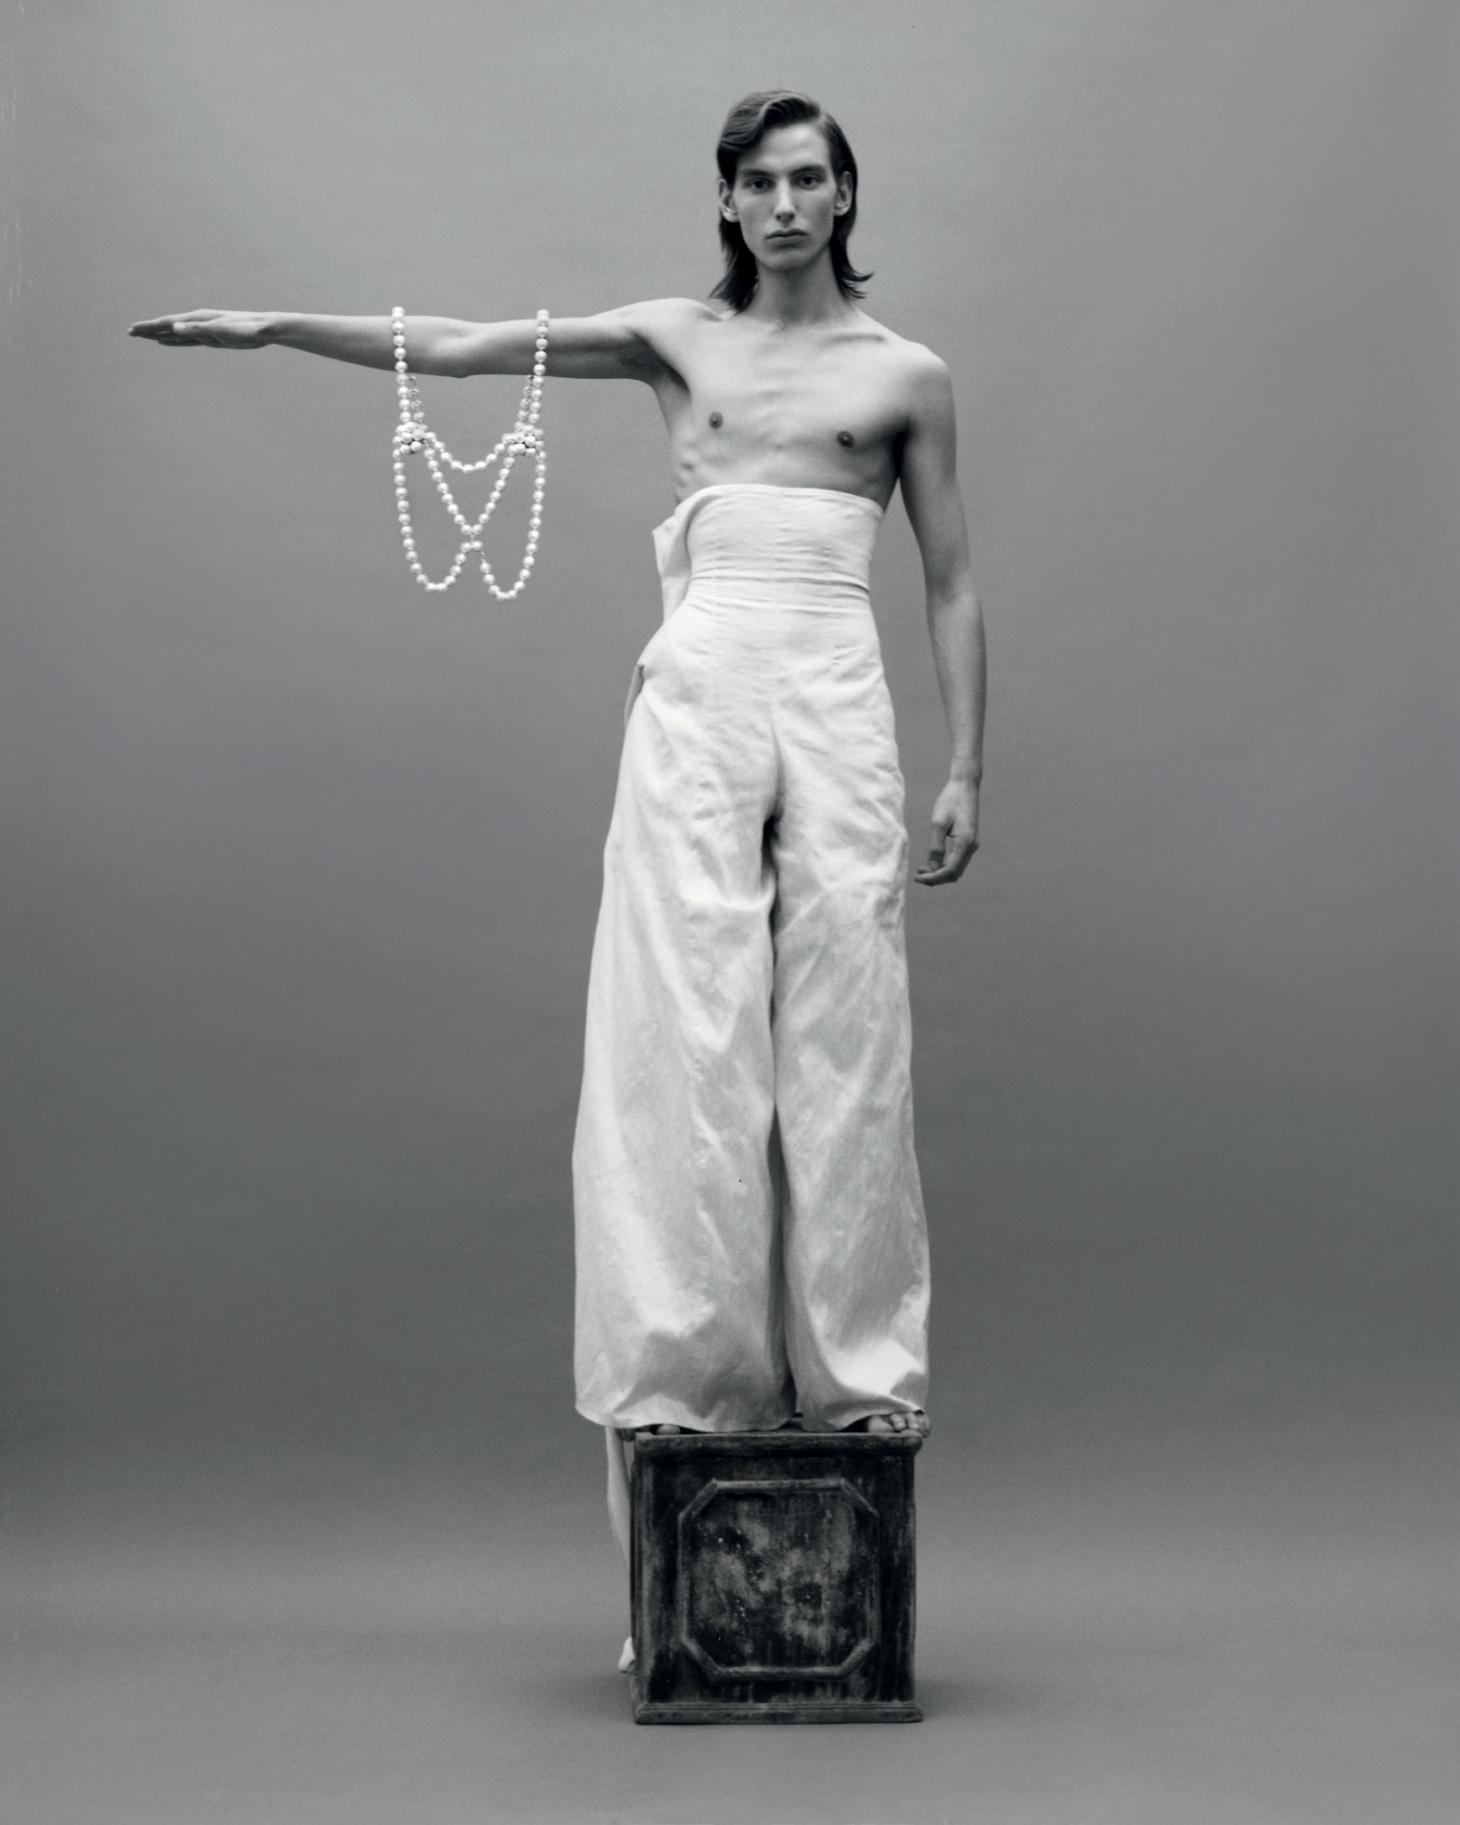 Man stands on a plinth holding a pearl necklace